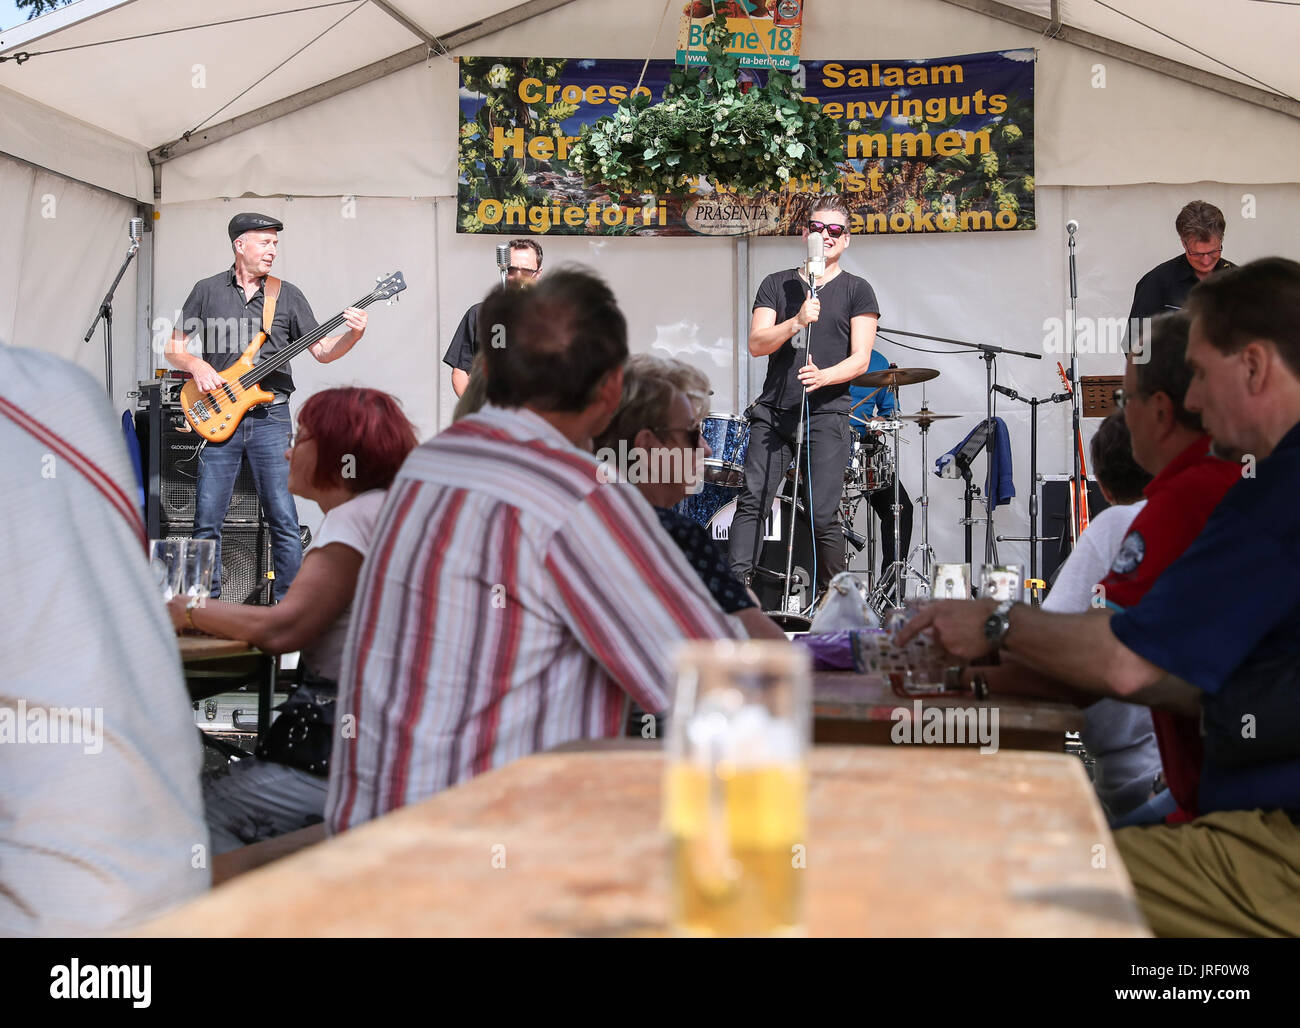 Berlin, Germany. 4th Aug, 2017. Visitors watch the performance of a band during the 21st International Berlin Beer Stock Photo